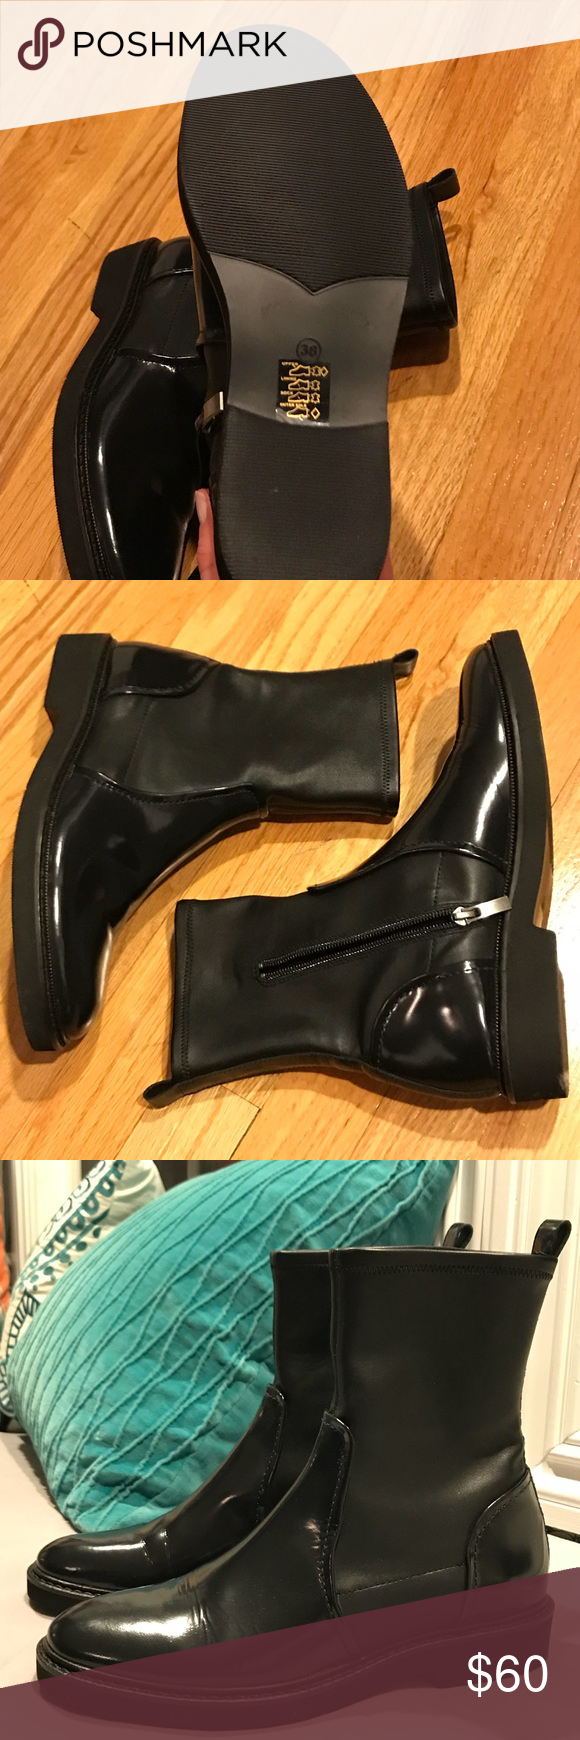 Patent Leather Bruno Premi Boots New unworn Bruno Premi shoes without box. Patent leather and faux leather featuring zip and pull tab. Size 38, slightly large for me but very good looking shoe. Dark blue almost appearing black. Bruno Premi Shoes Ankle Boots & Booties